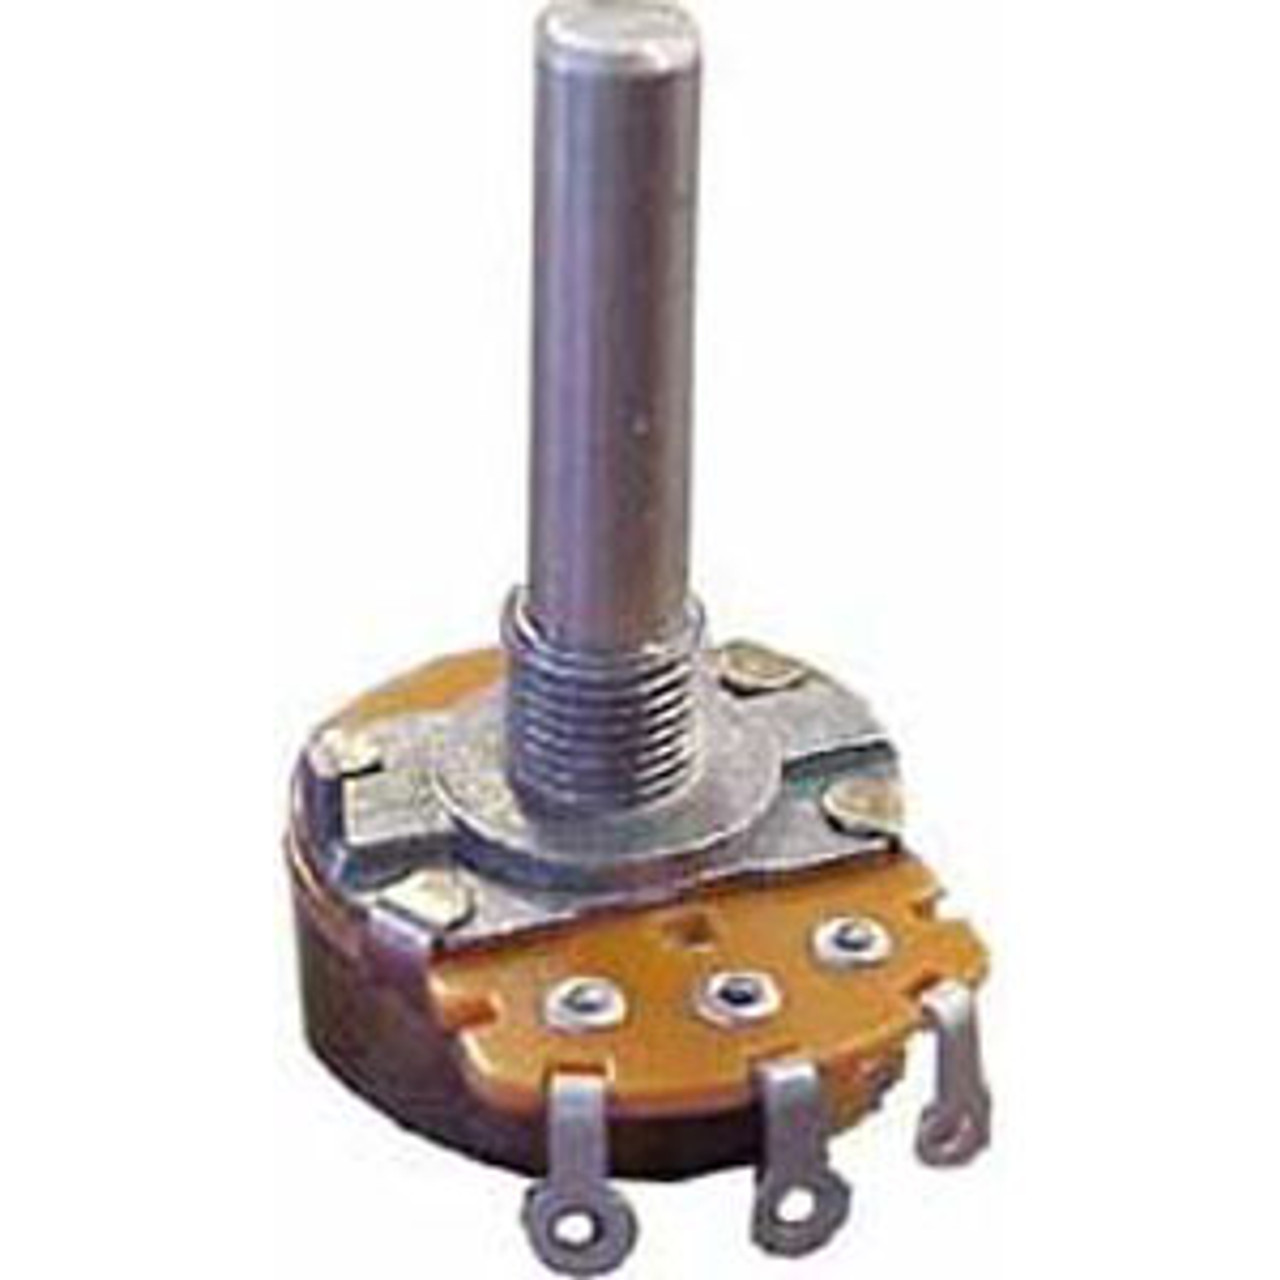 10K Potentiometer (16 mm) Linear taper without switch Solder lug terminals Max voltage: 150 VAC Audio 200 VAC Power rating: Linear 200mA, .2W Audio 100 mA, .1W Bushing diameter 7 mm Shaft 30mm w/flat 12mm, 6mm OD